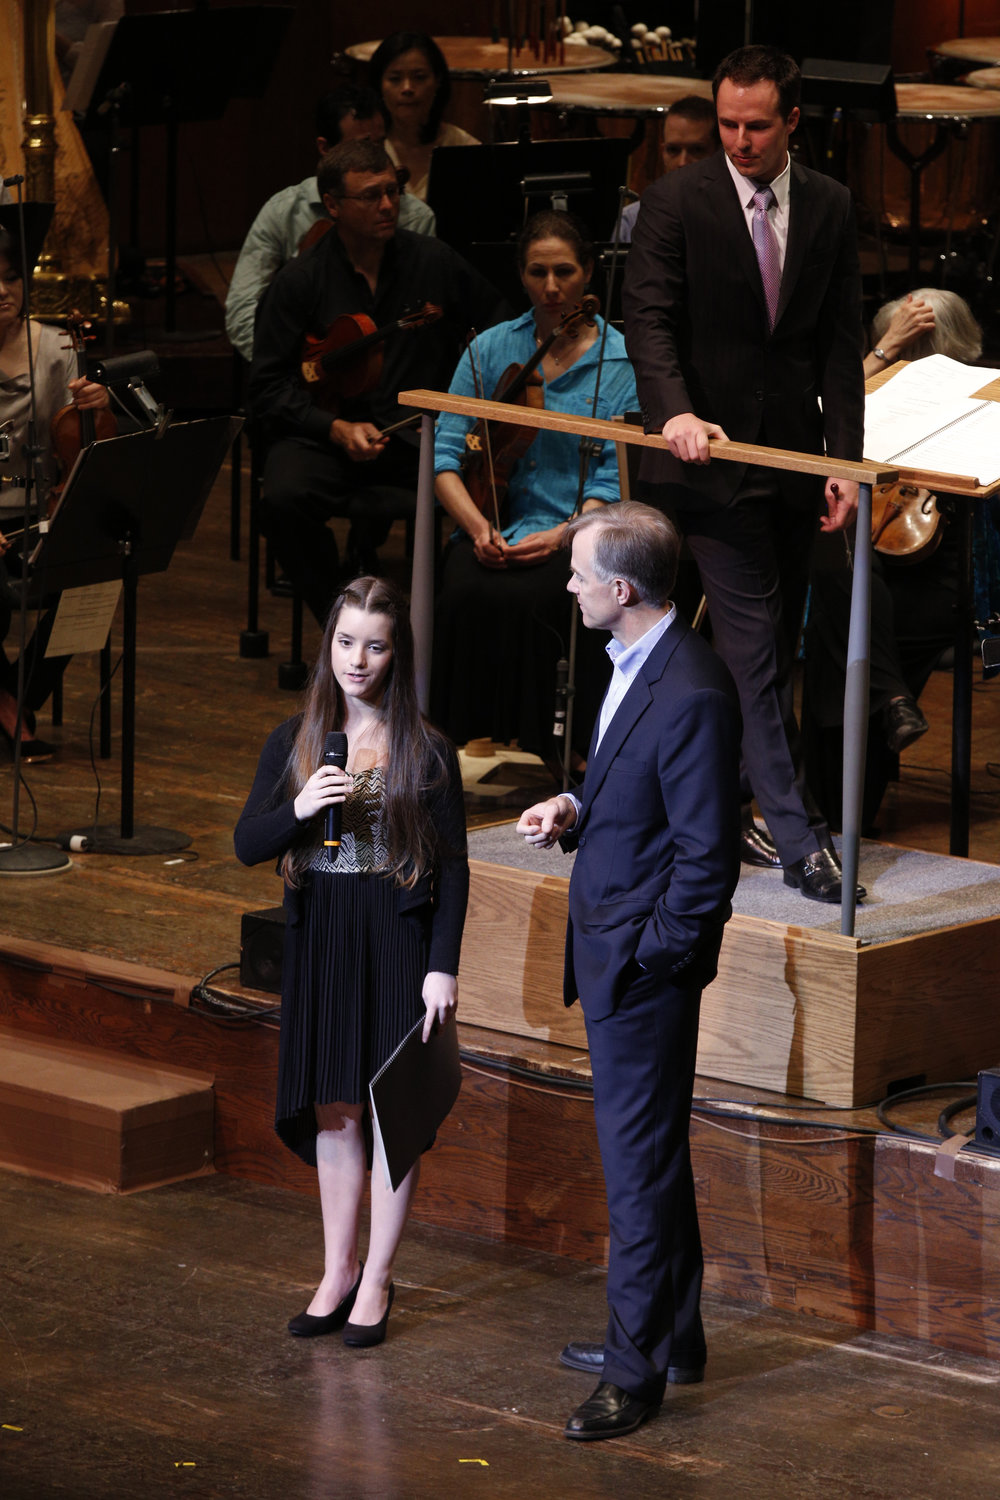 Speaking at the New York Philharmonic Performance